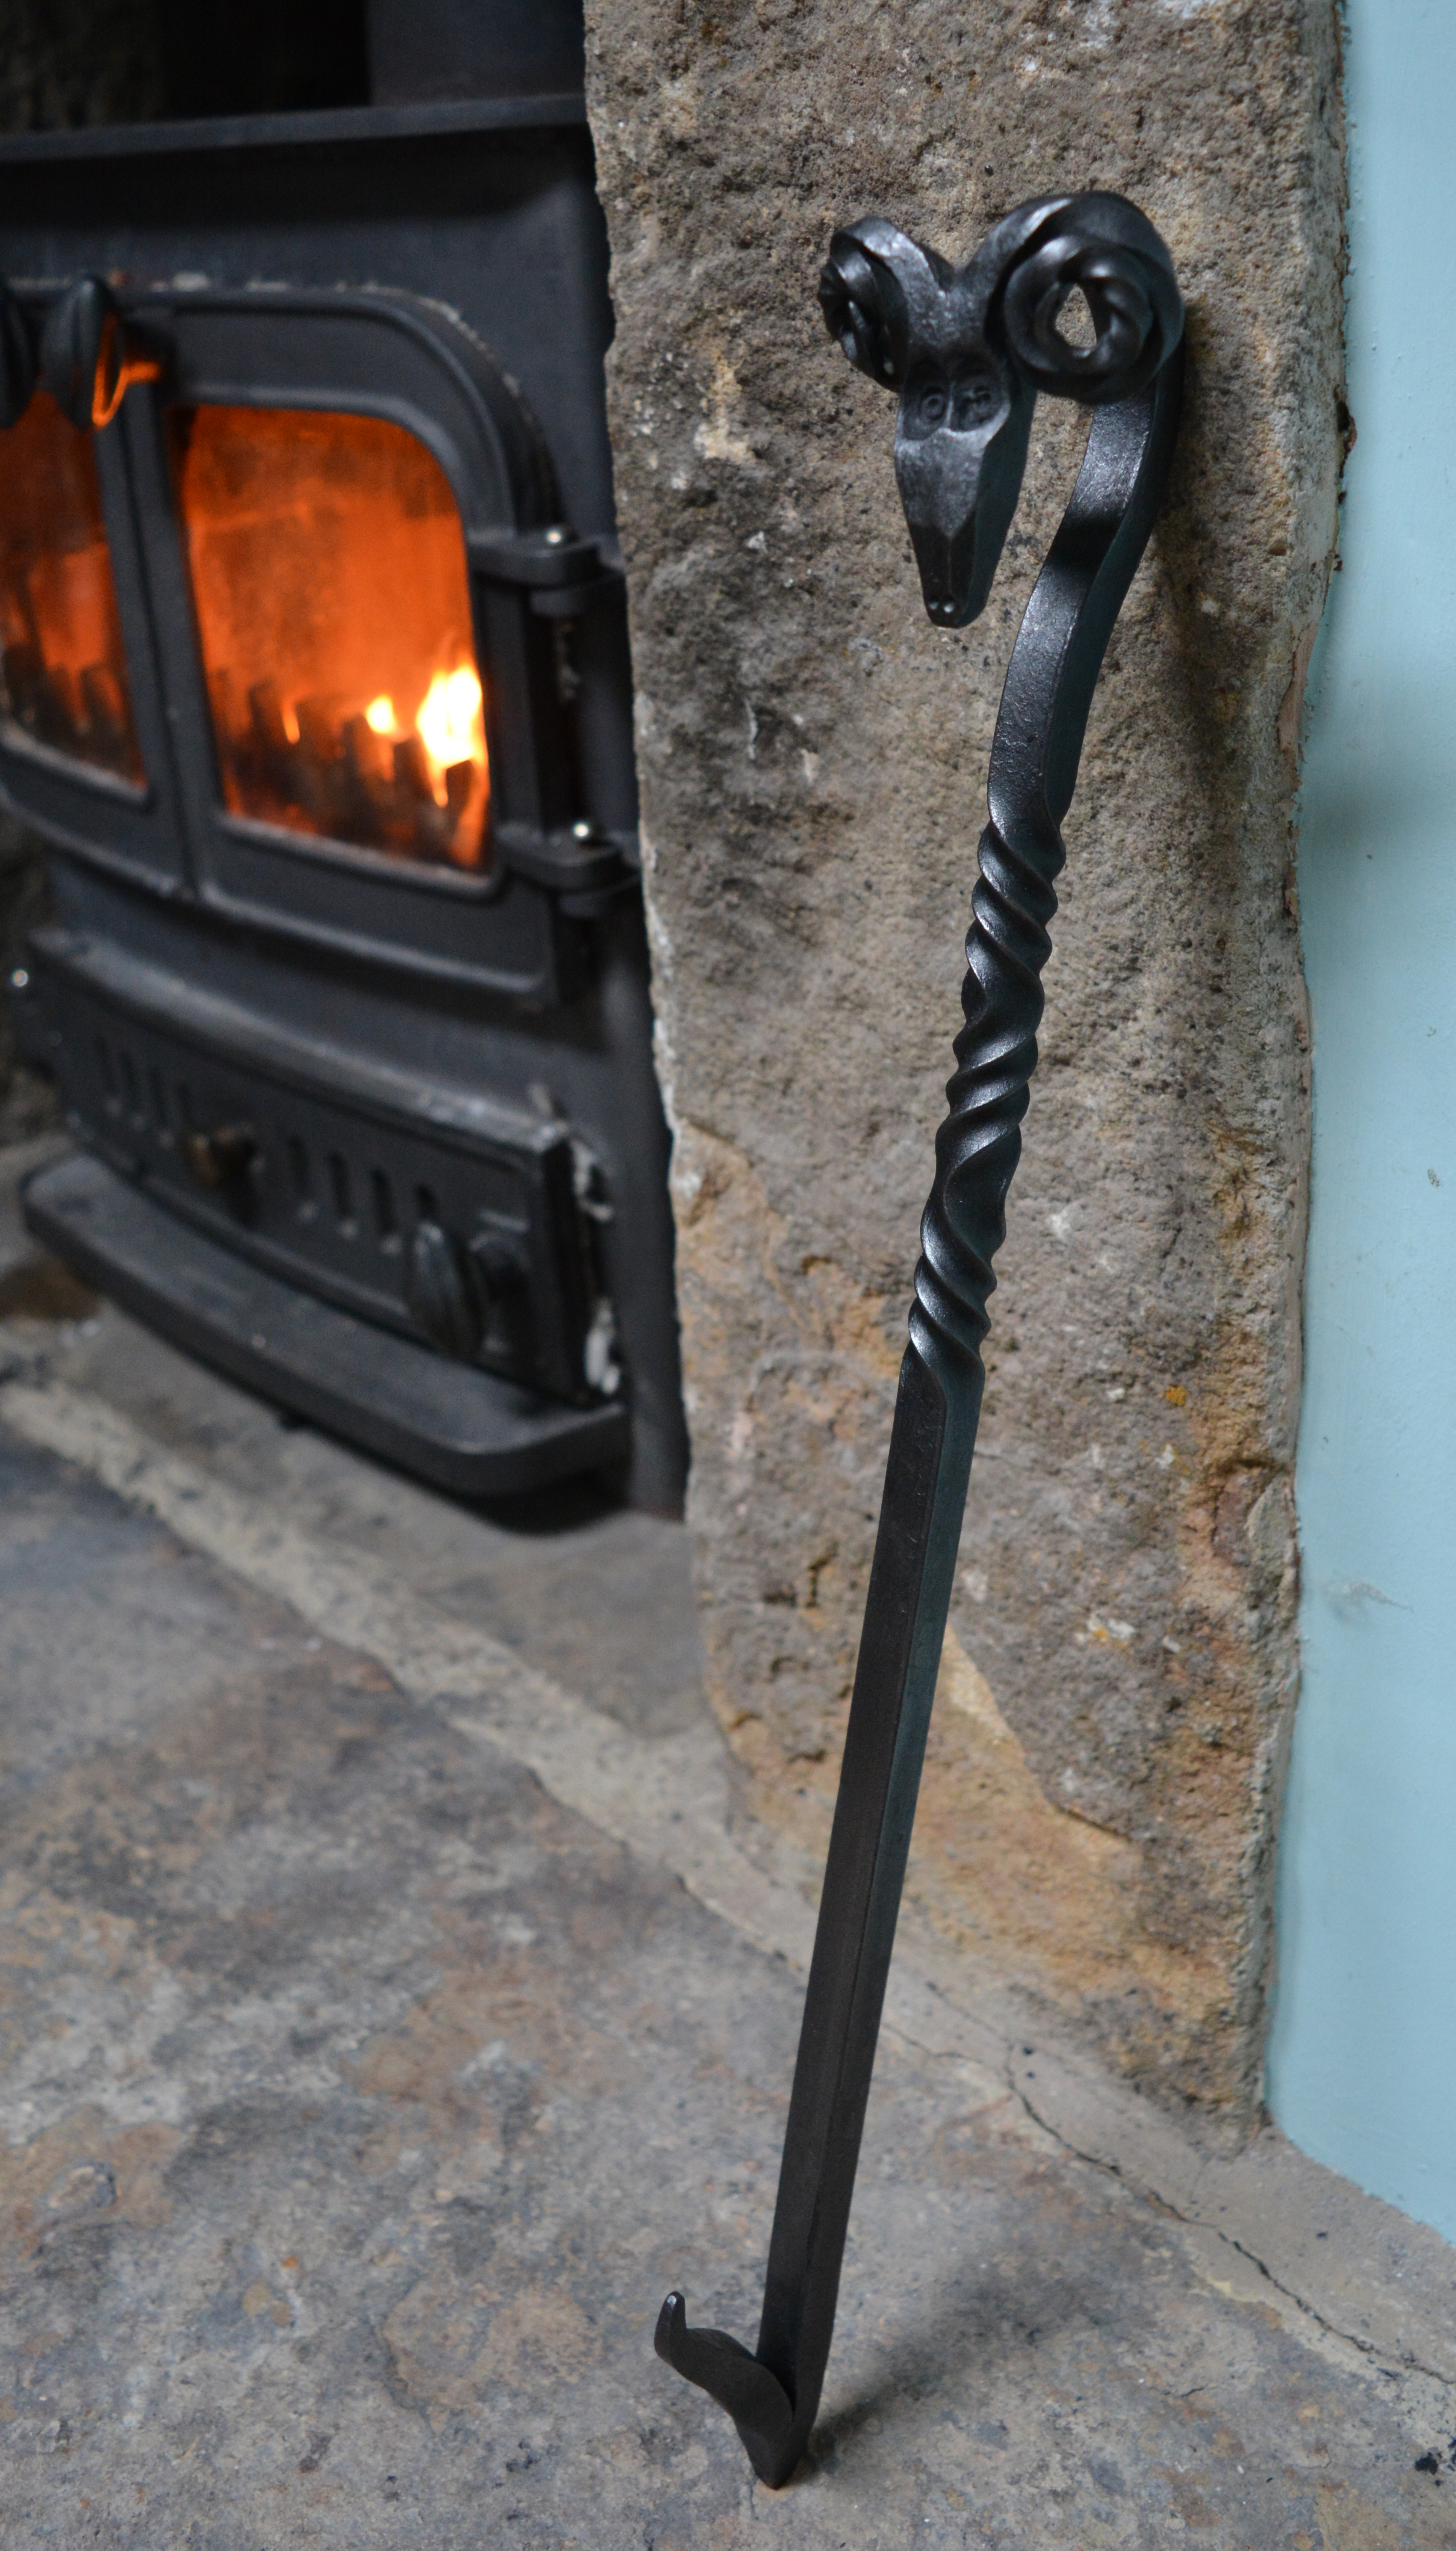 Rams head fire tools blacksmith forged at the Malham Smithy